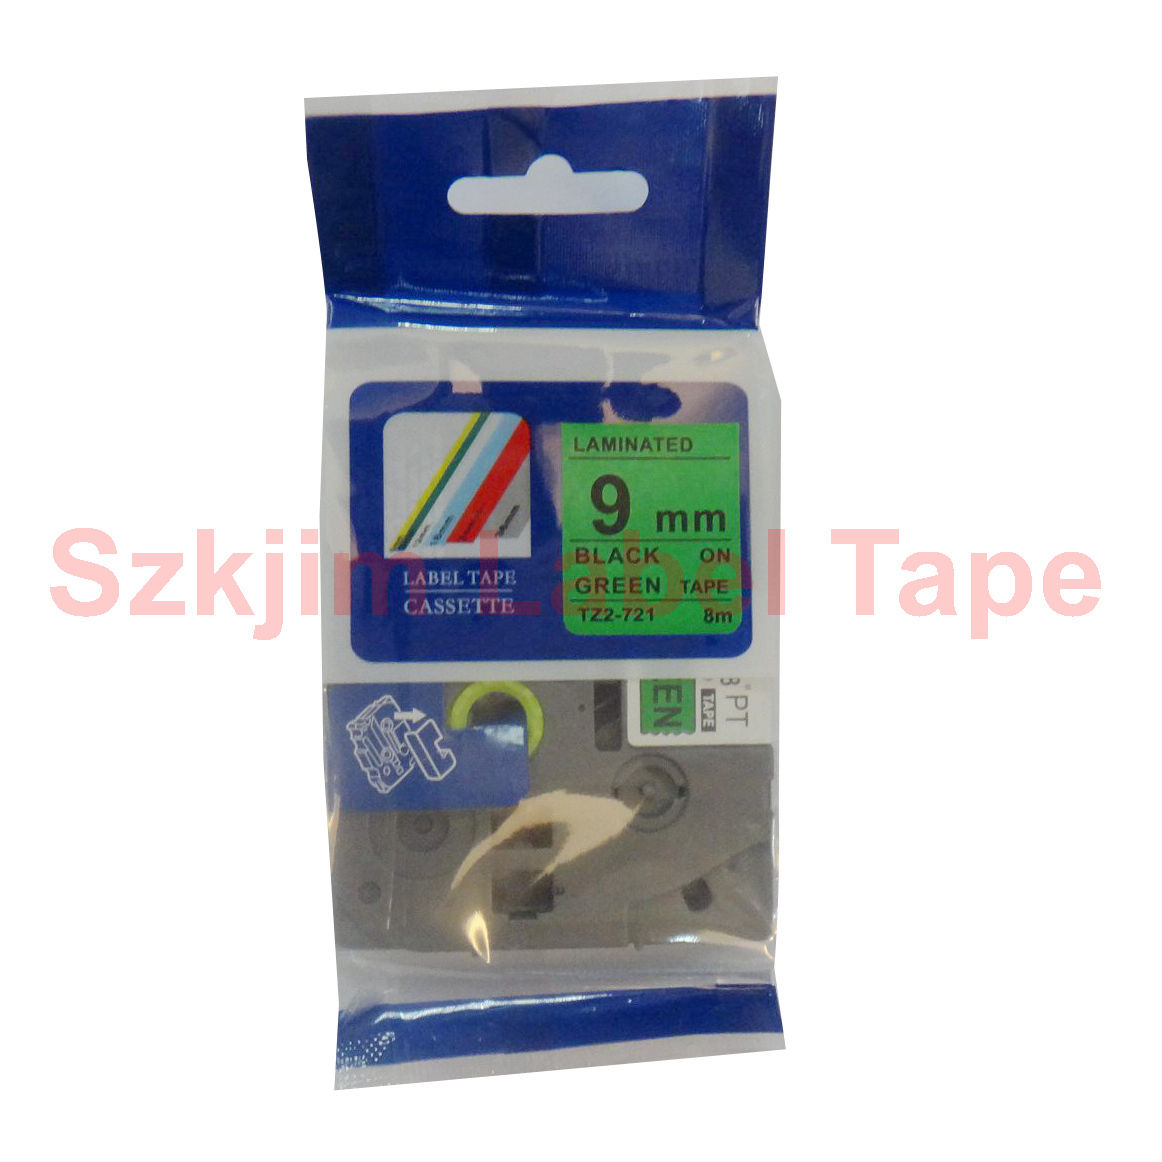 Tz 721 Black On Green Label 9mm 8m Compatible For Brother P Touch Tape Tze M951 24mm Silver Matt Variable 7 11 Shop